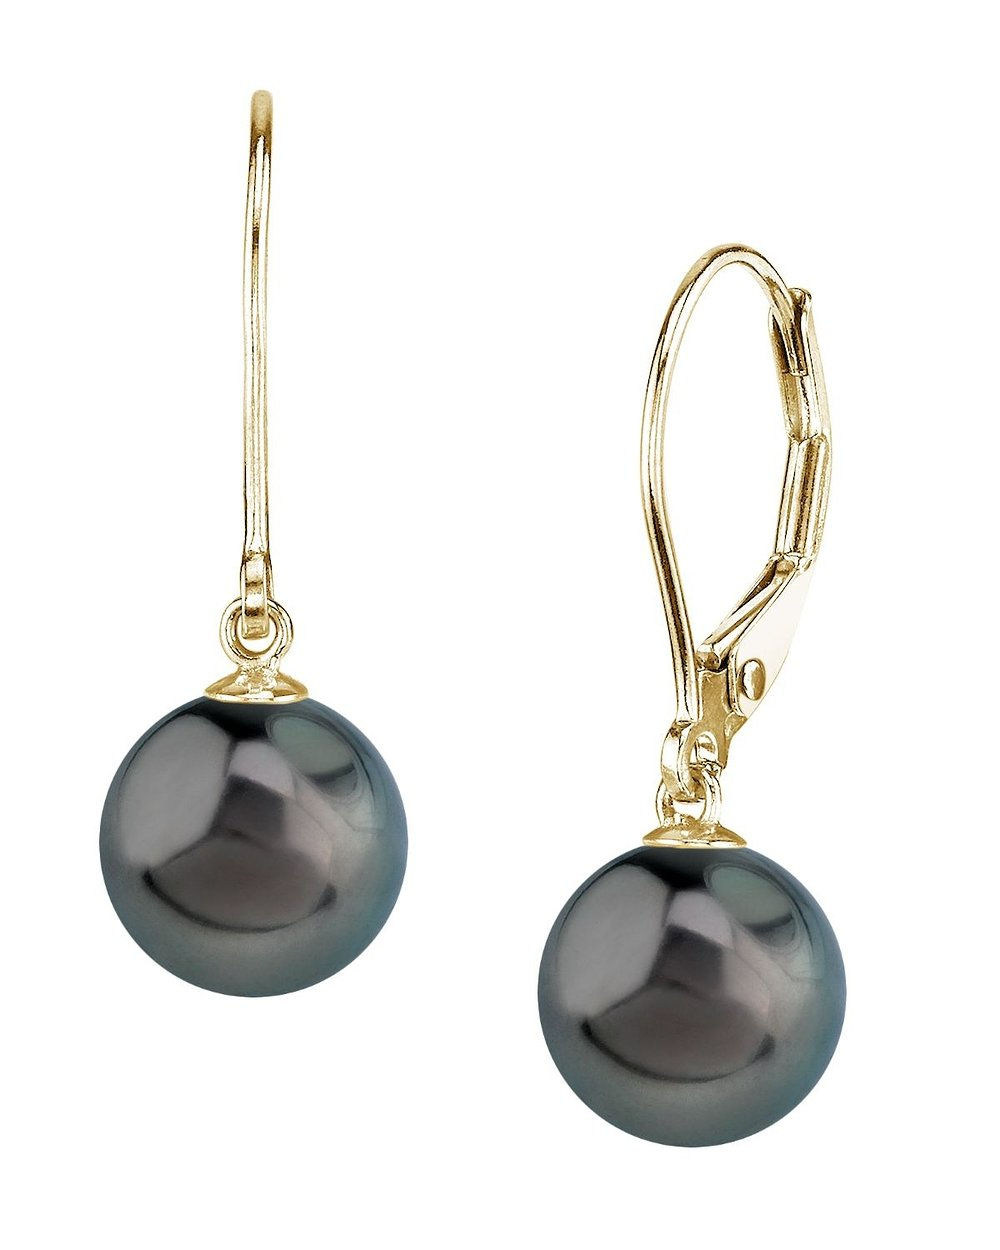 14K Gold Round Tahitian South Sea High Luster Cultured Pearl Leverback Earrings